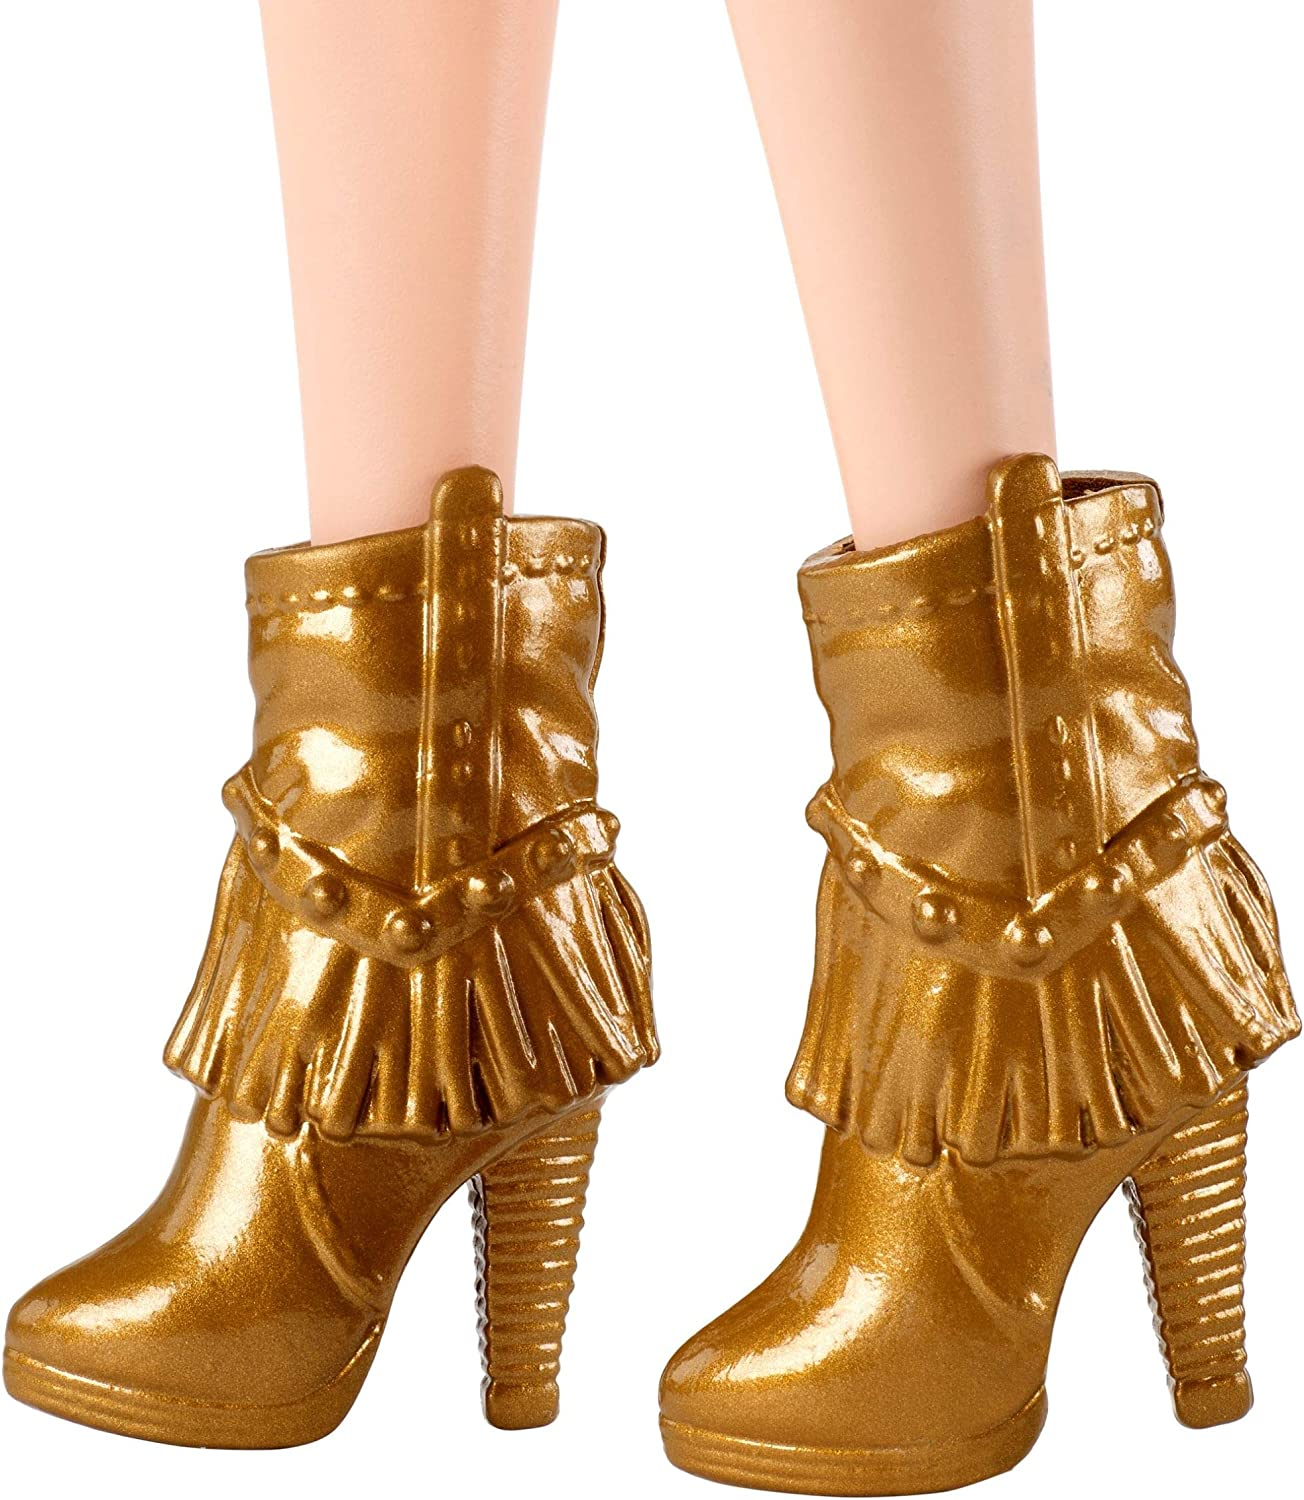 NEW Barbie Fashionista Original /& Petite Doll Brown Boots ~ Flat Shoes Clothing